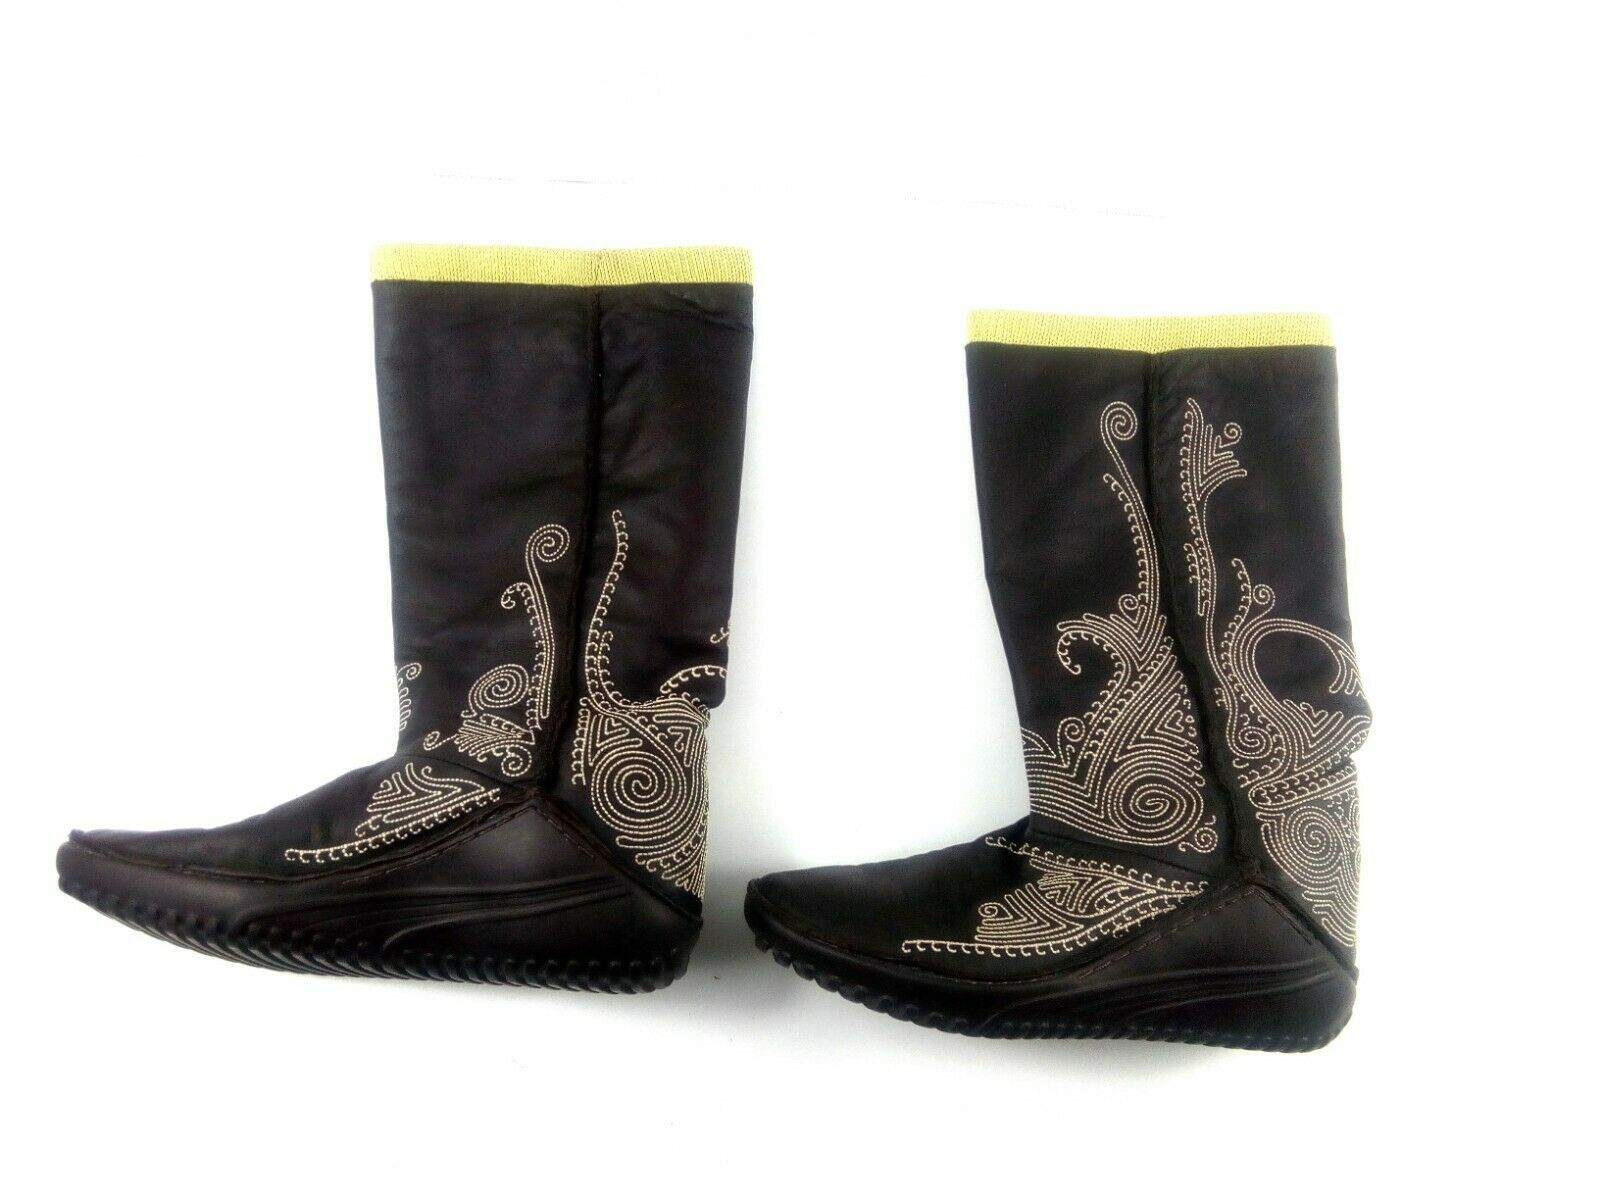 Puma Women's Boots Monsoon Tall Leather Embroidered Brown/Green Booties 7.5 W - $49.32